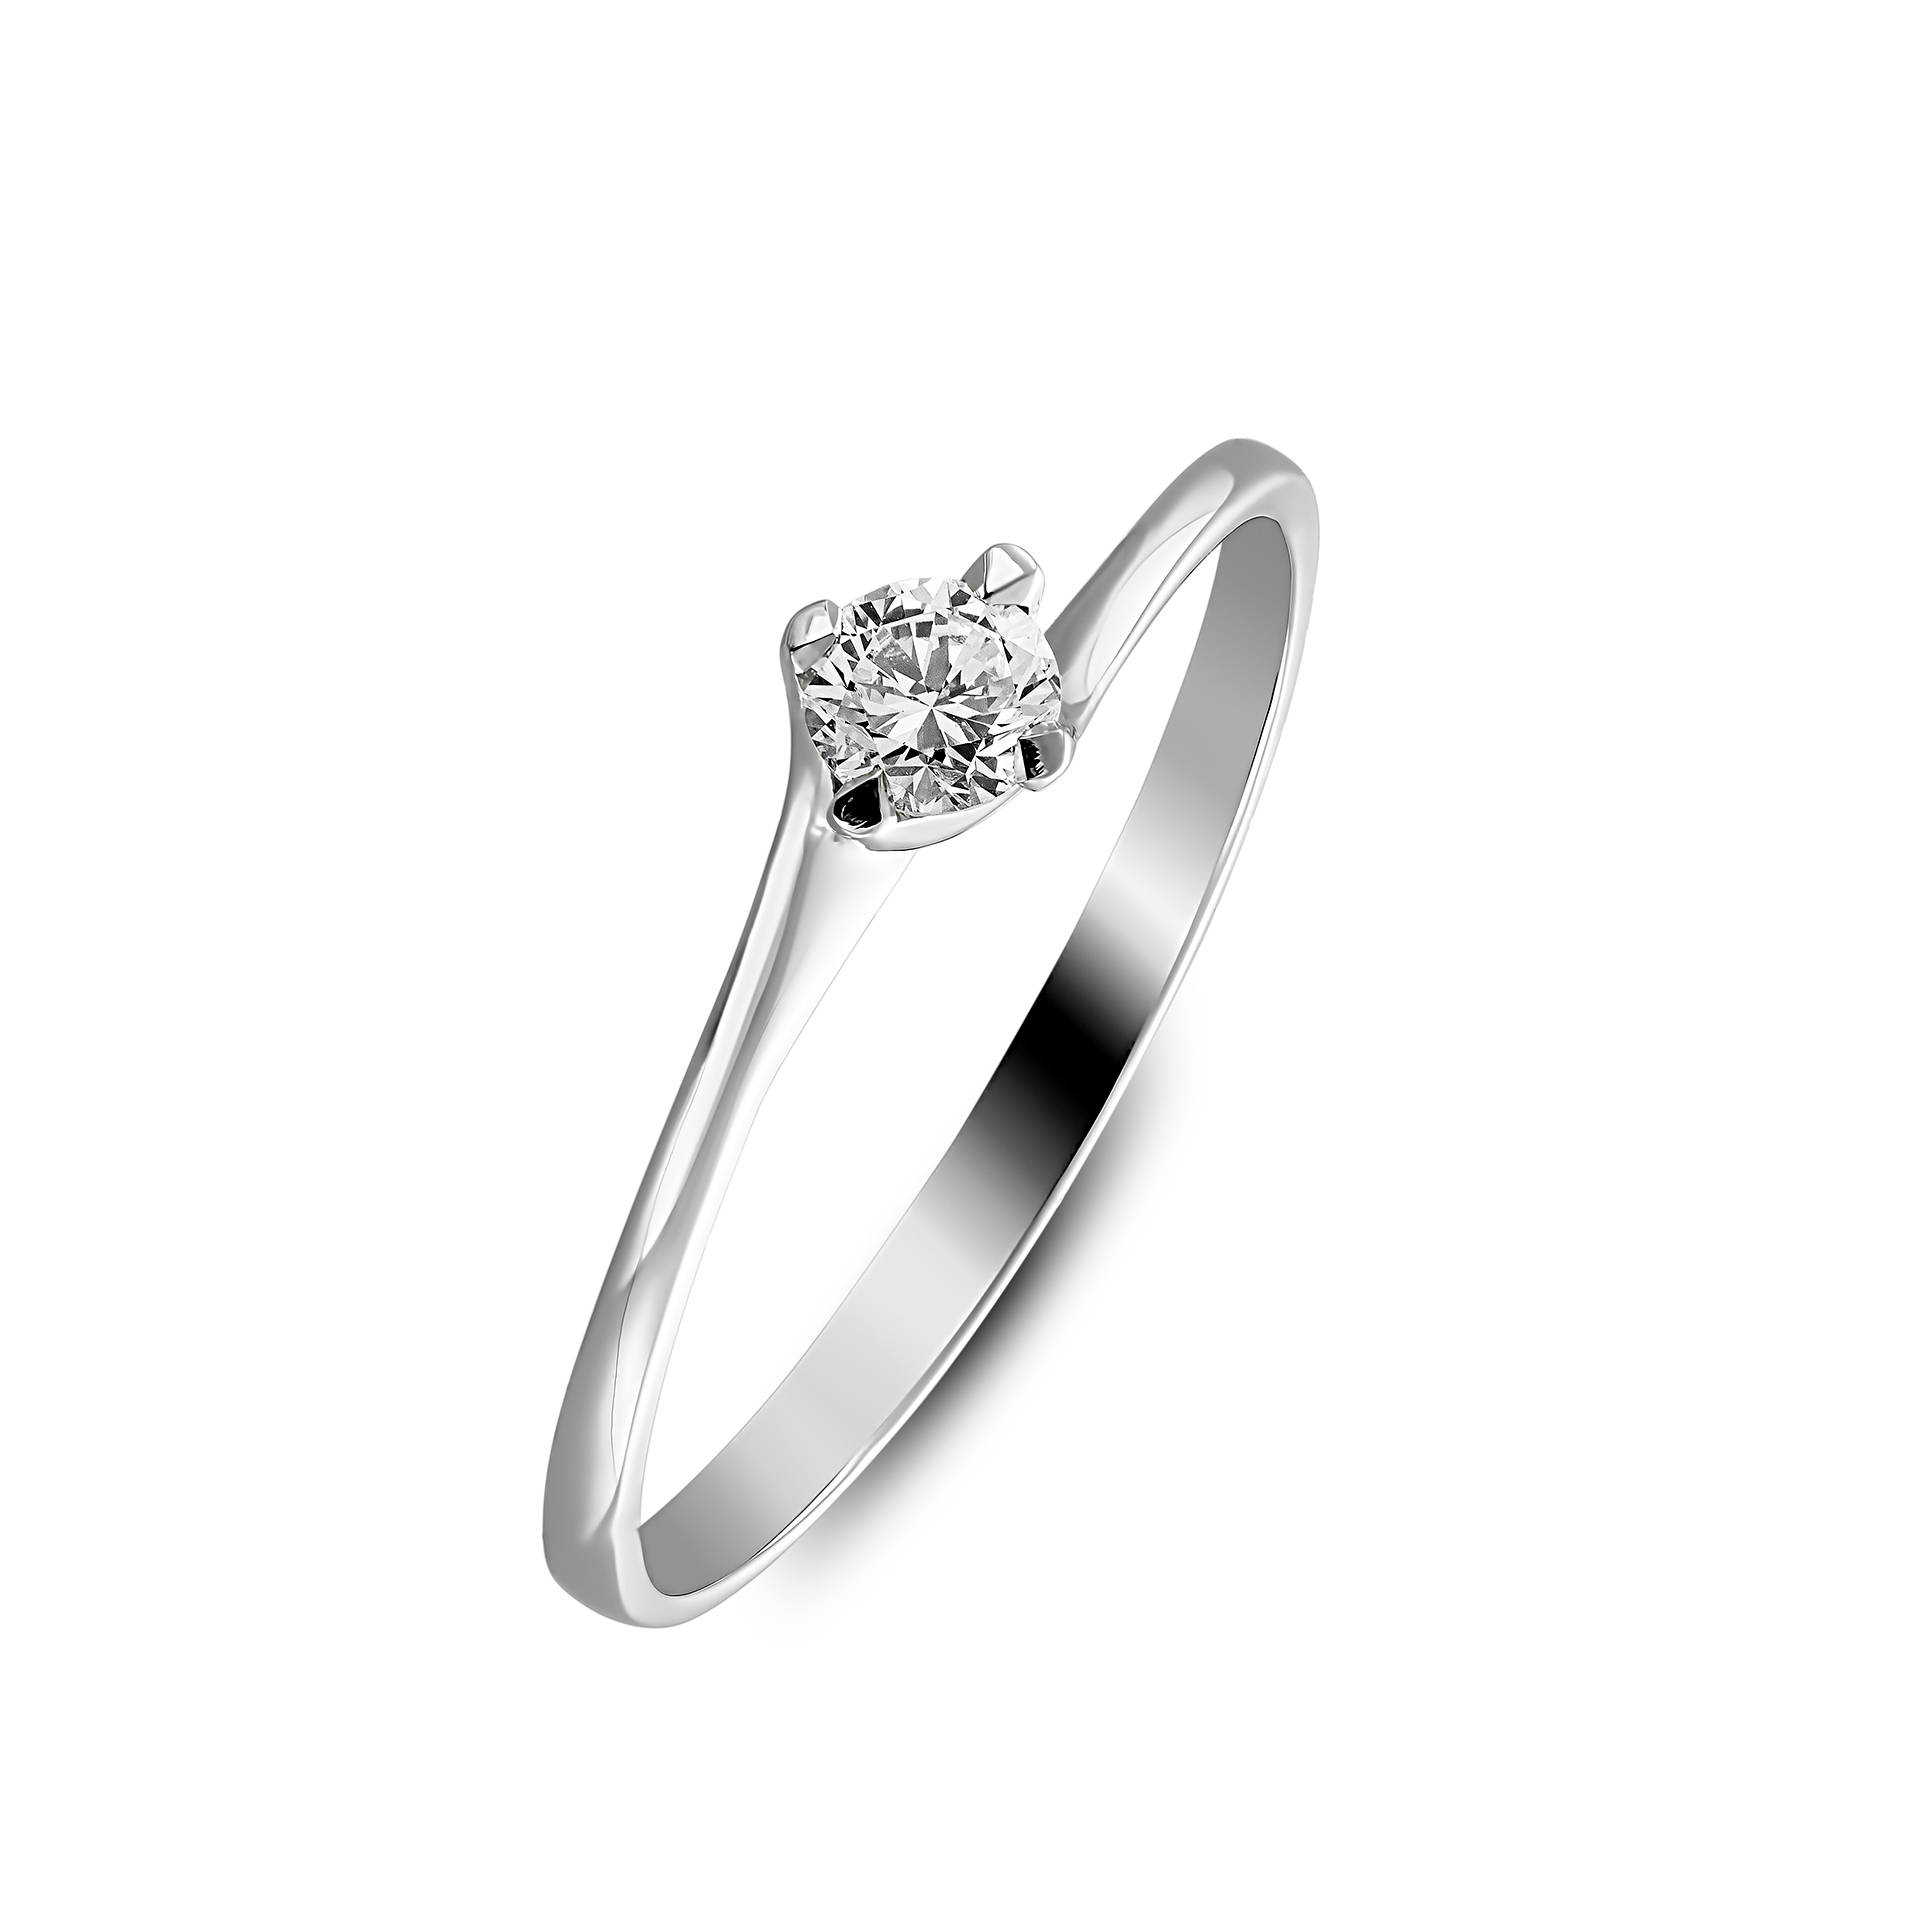 White gold engagement ring with solitair diamond